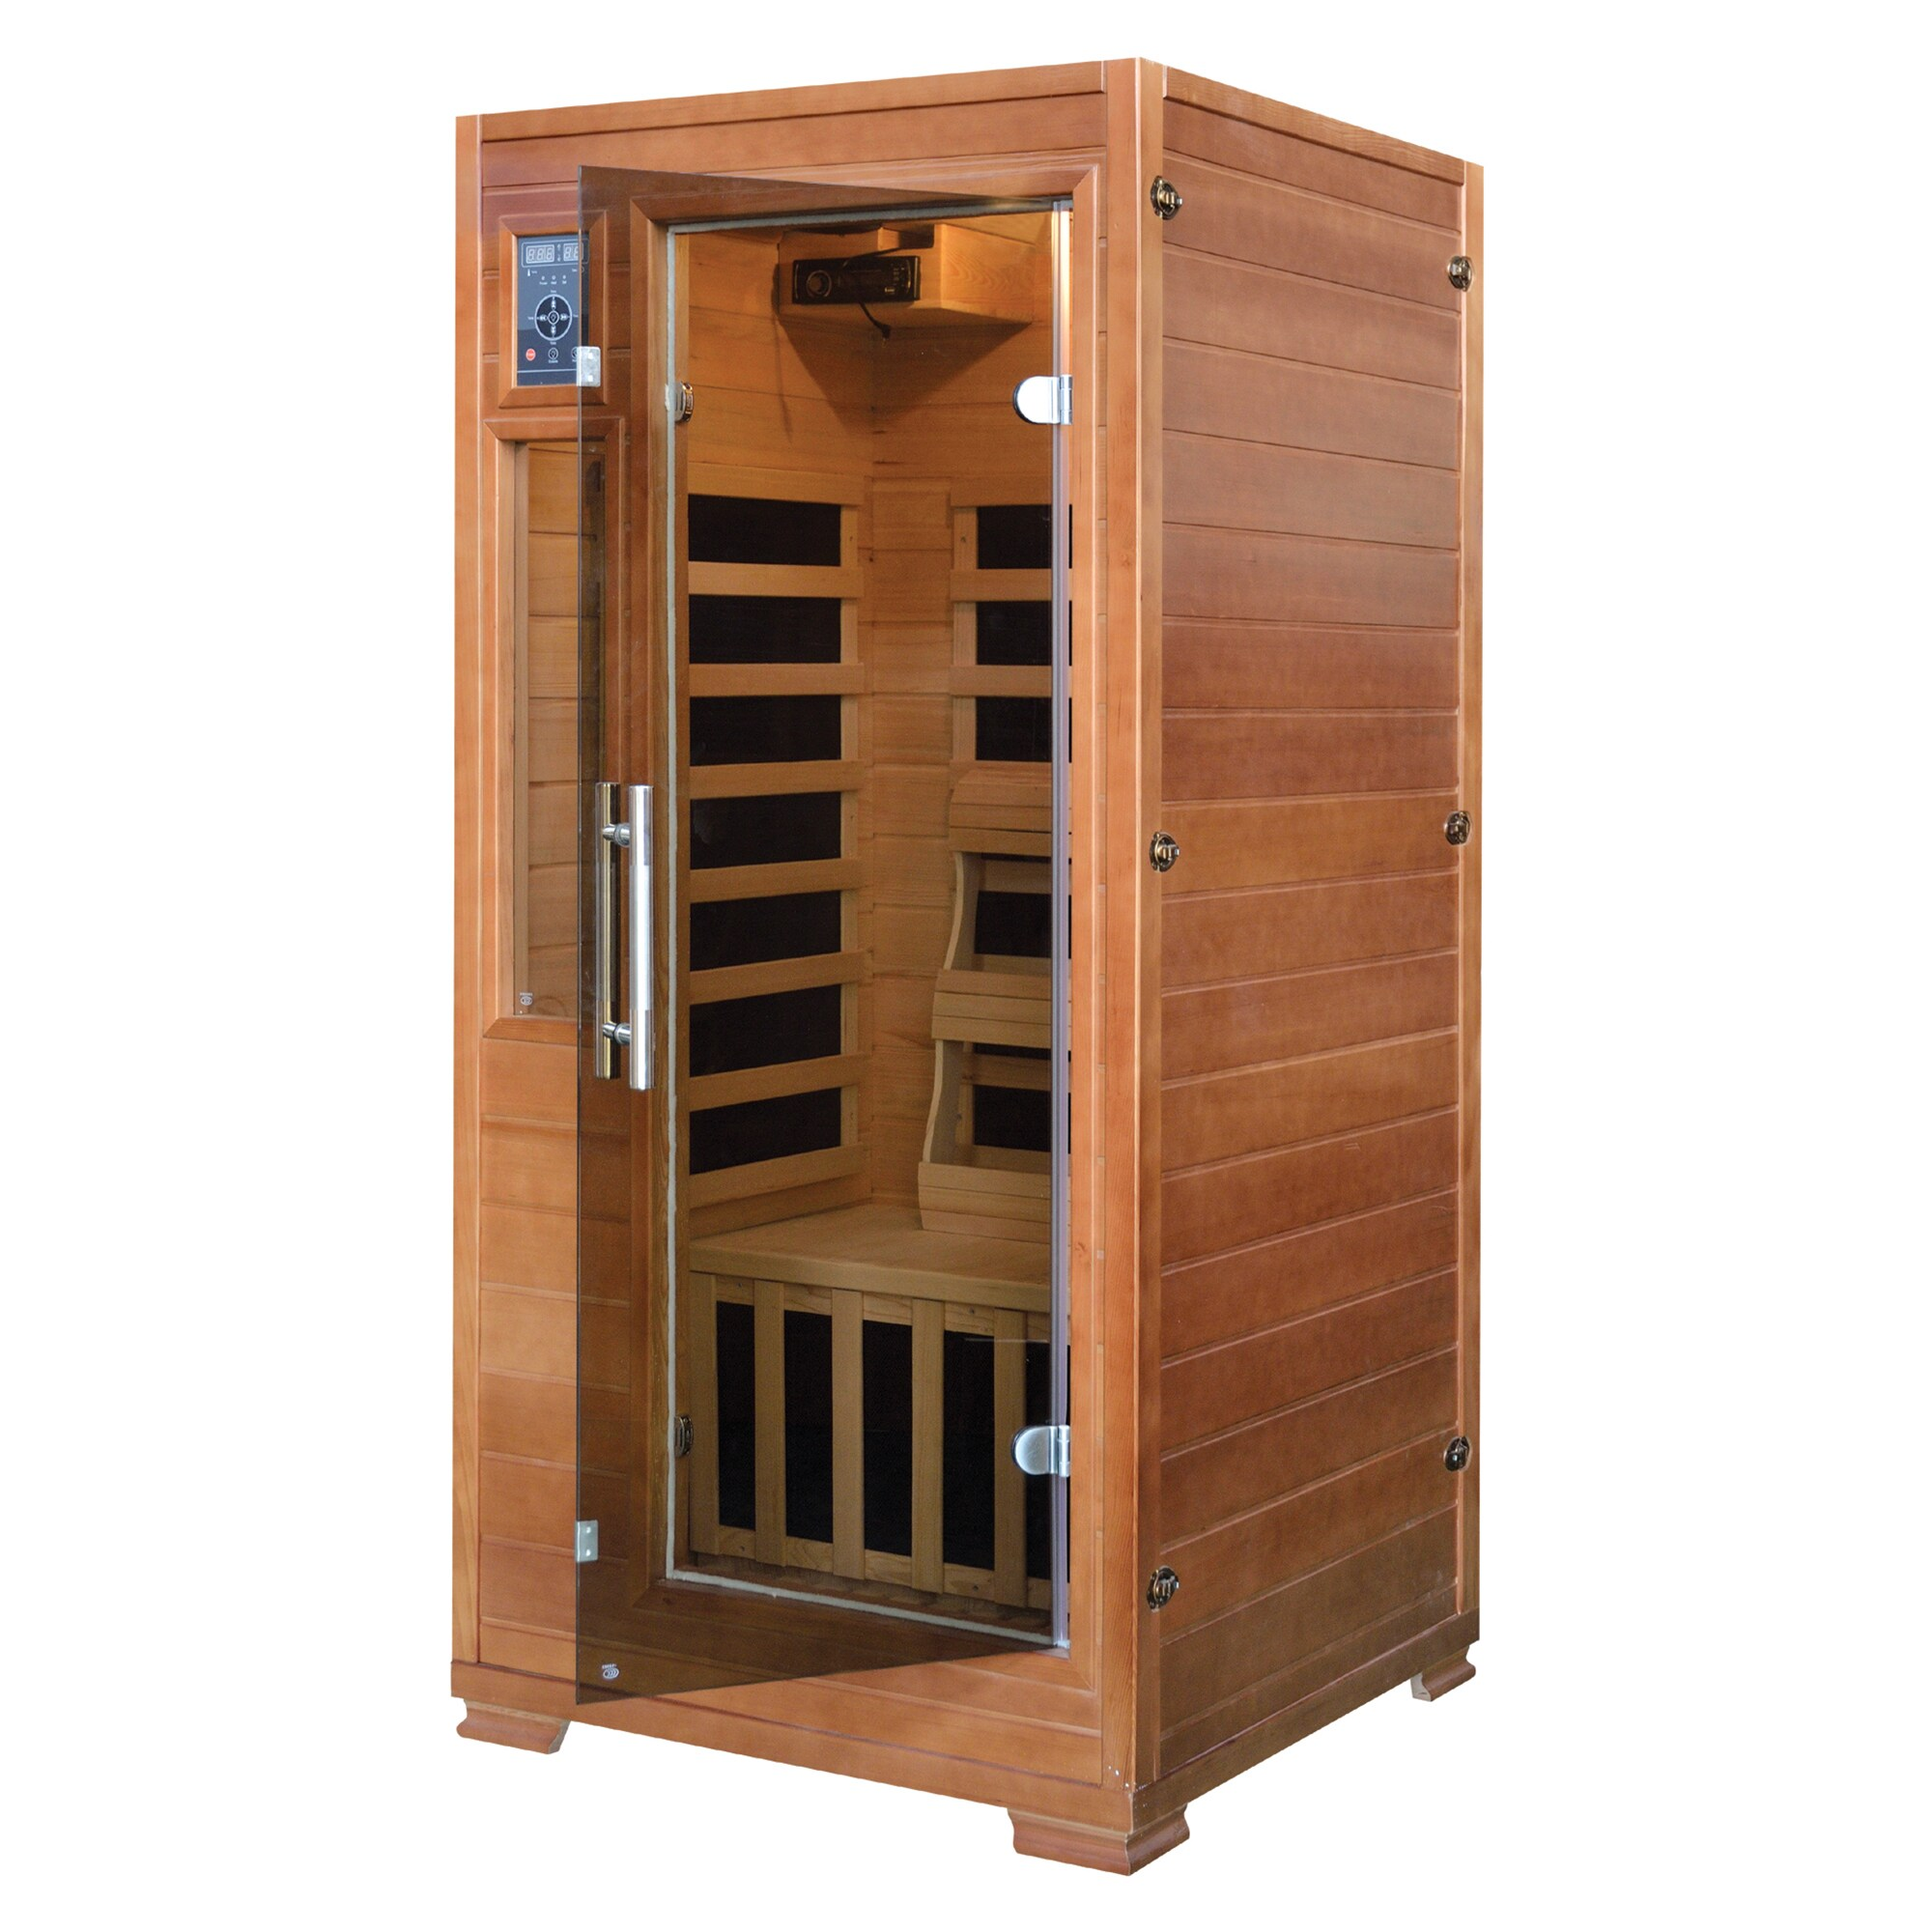 Sauna 24 1 2 Person Hemlock Infrared Sauna W 5 Carbon Heaters